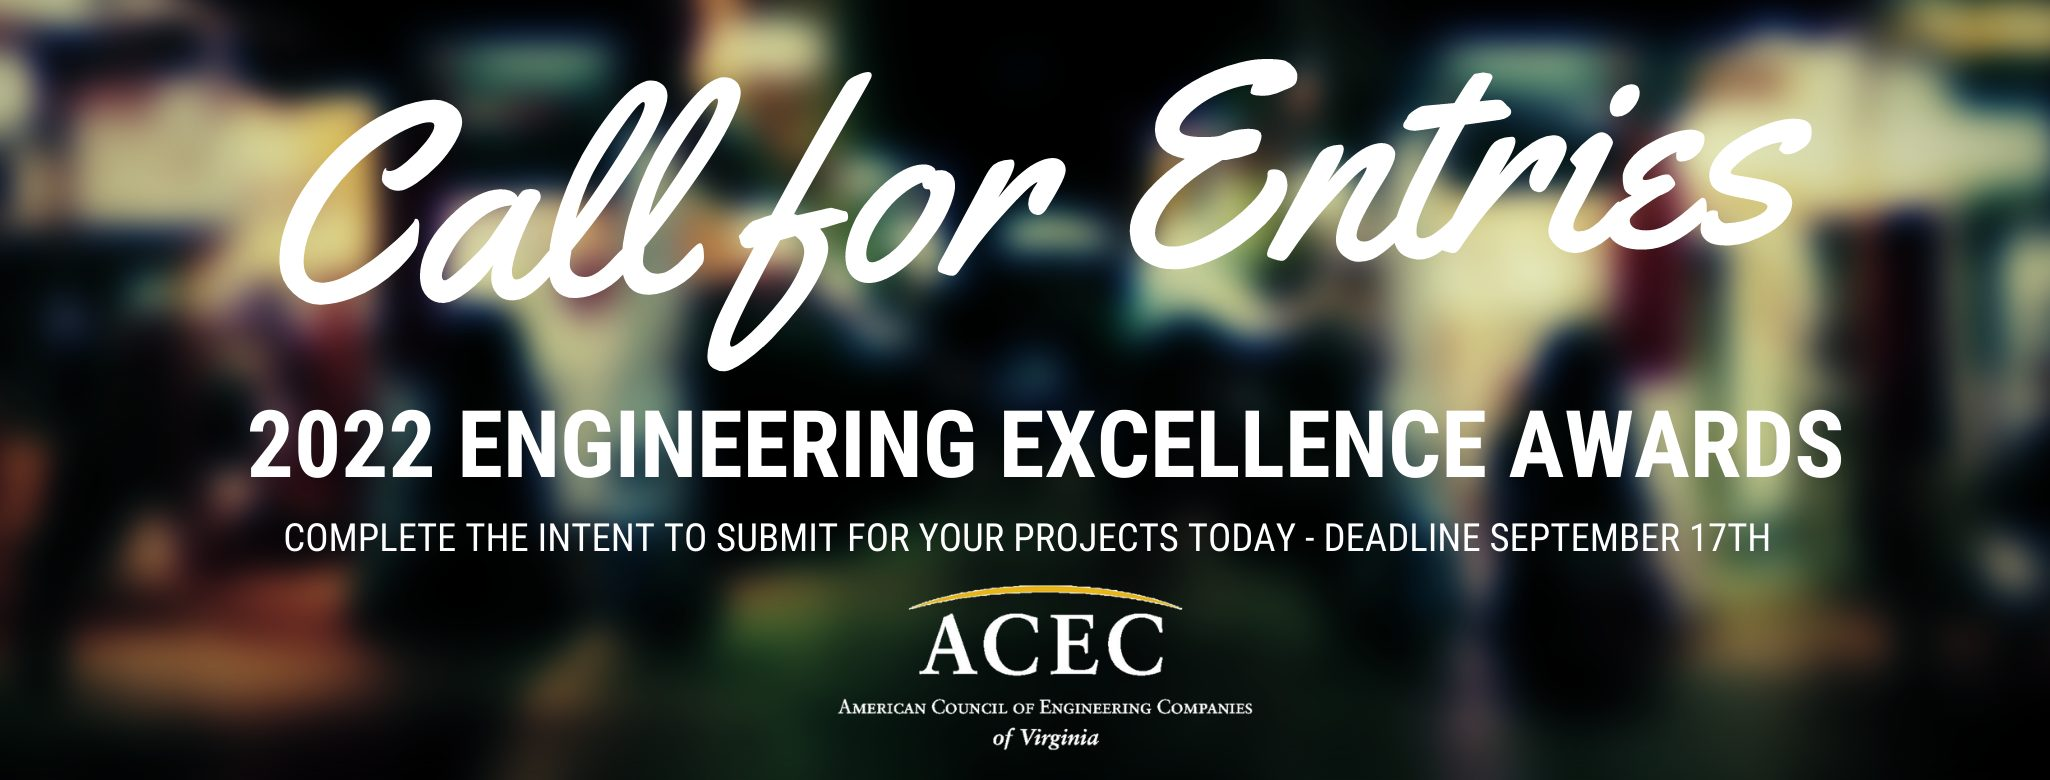 Call for Entries 2022